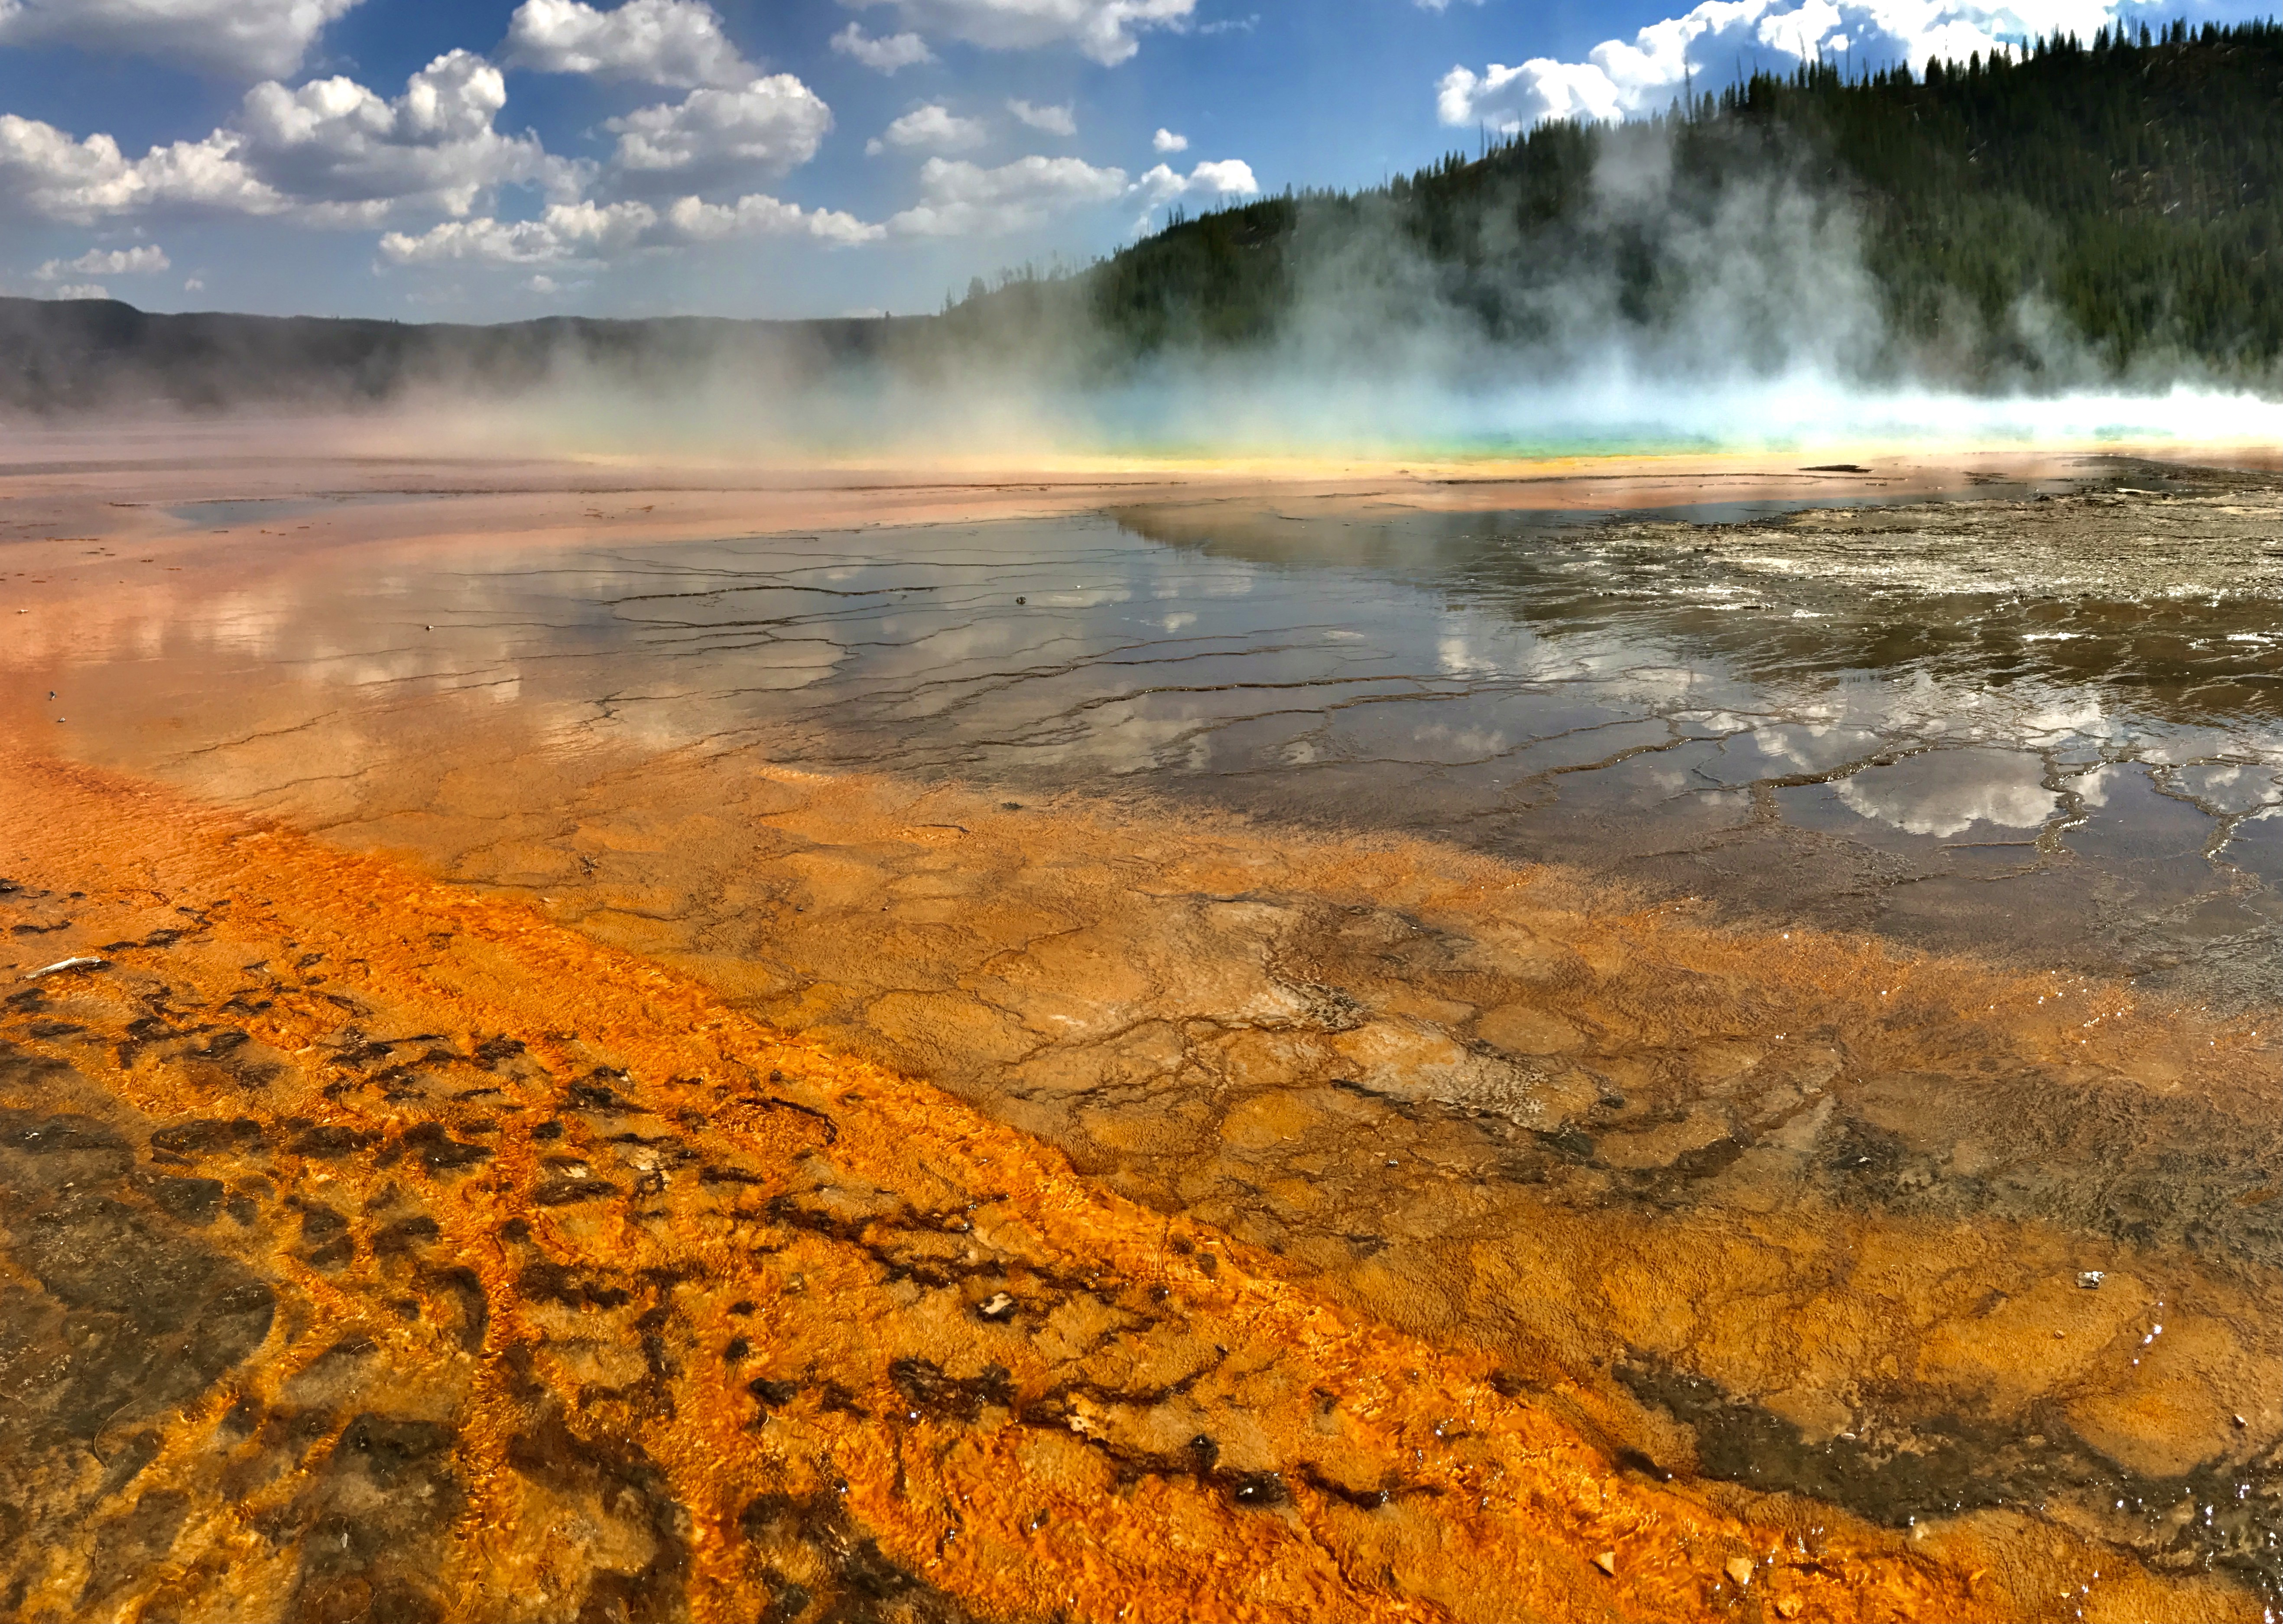 Steam rises from a shallow pool of water with a rust-colored bottom.